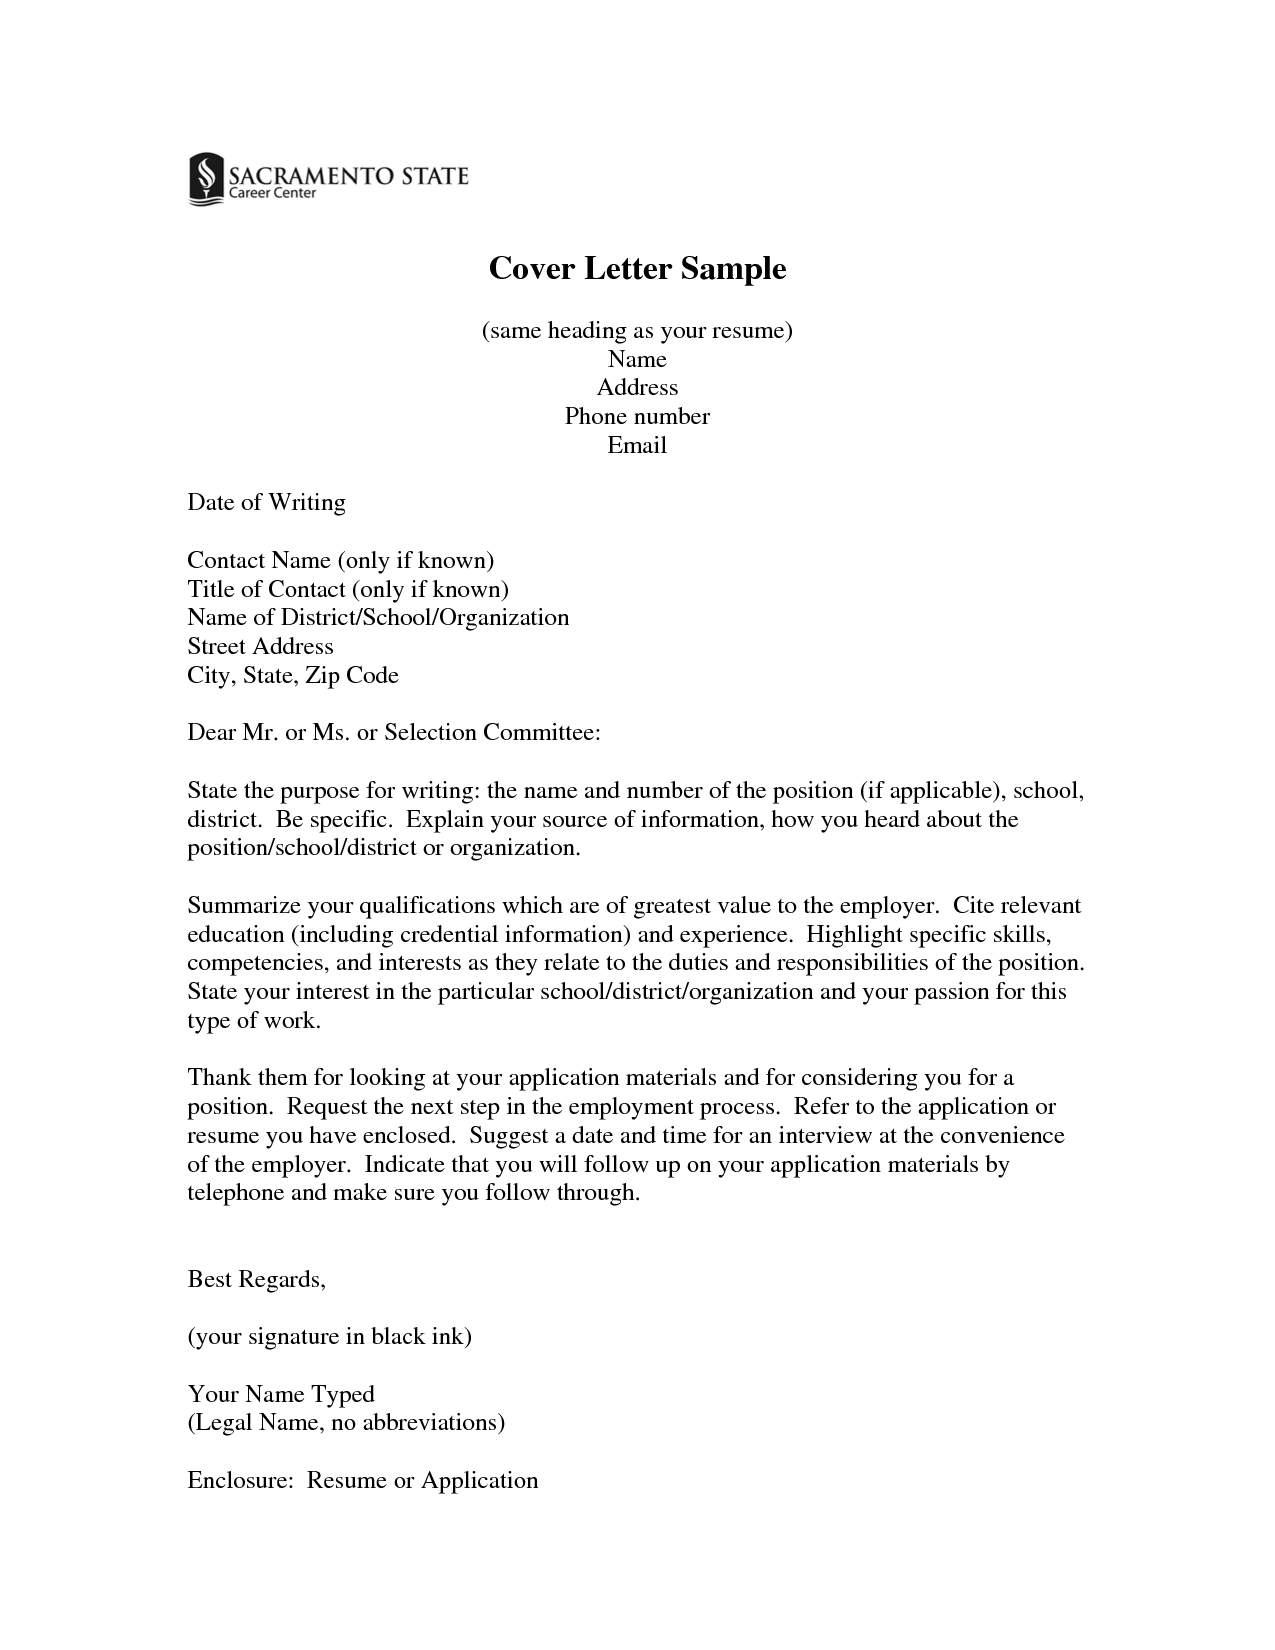 Cover Letter Address Unique Same Cover Letters For Resume  Cover Letter Sample Same Heading Inspiration